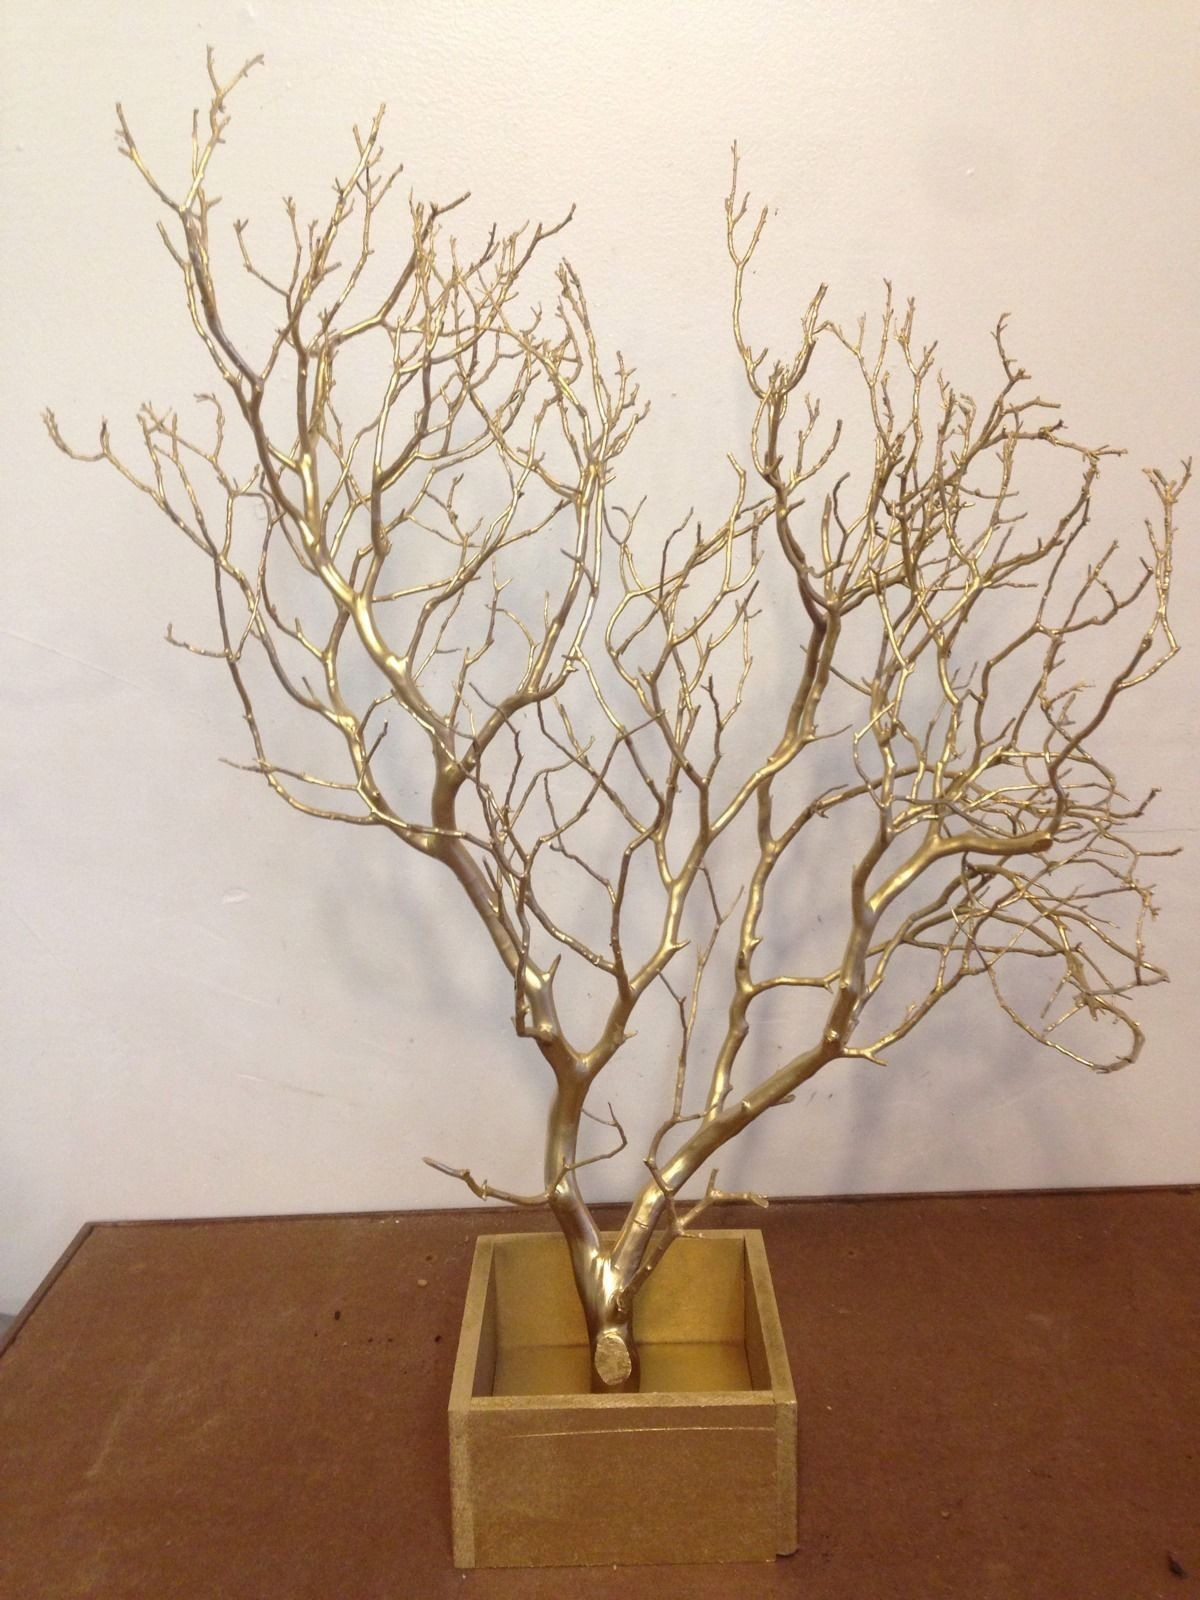 tall stem vase of decorative branches for weddings awesome tall vase centerpiece ideas in decorative branches for weddings inspirational gold manzanita branch centerpiece of decorative branches for weddings decorative branches